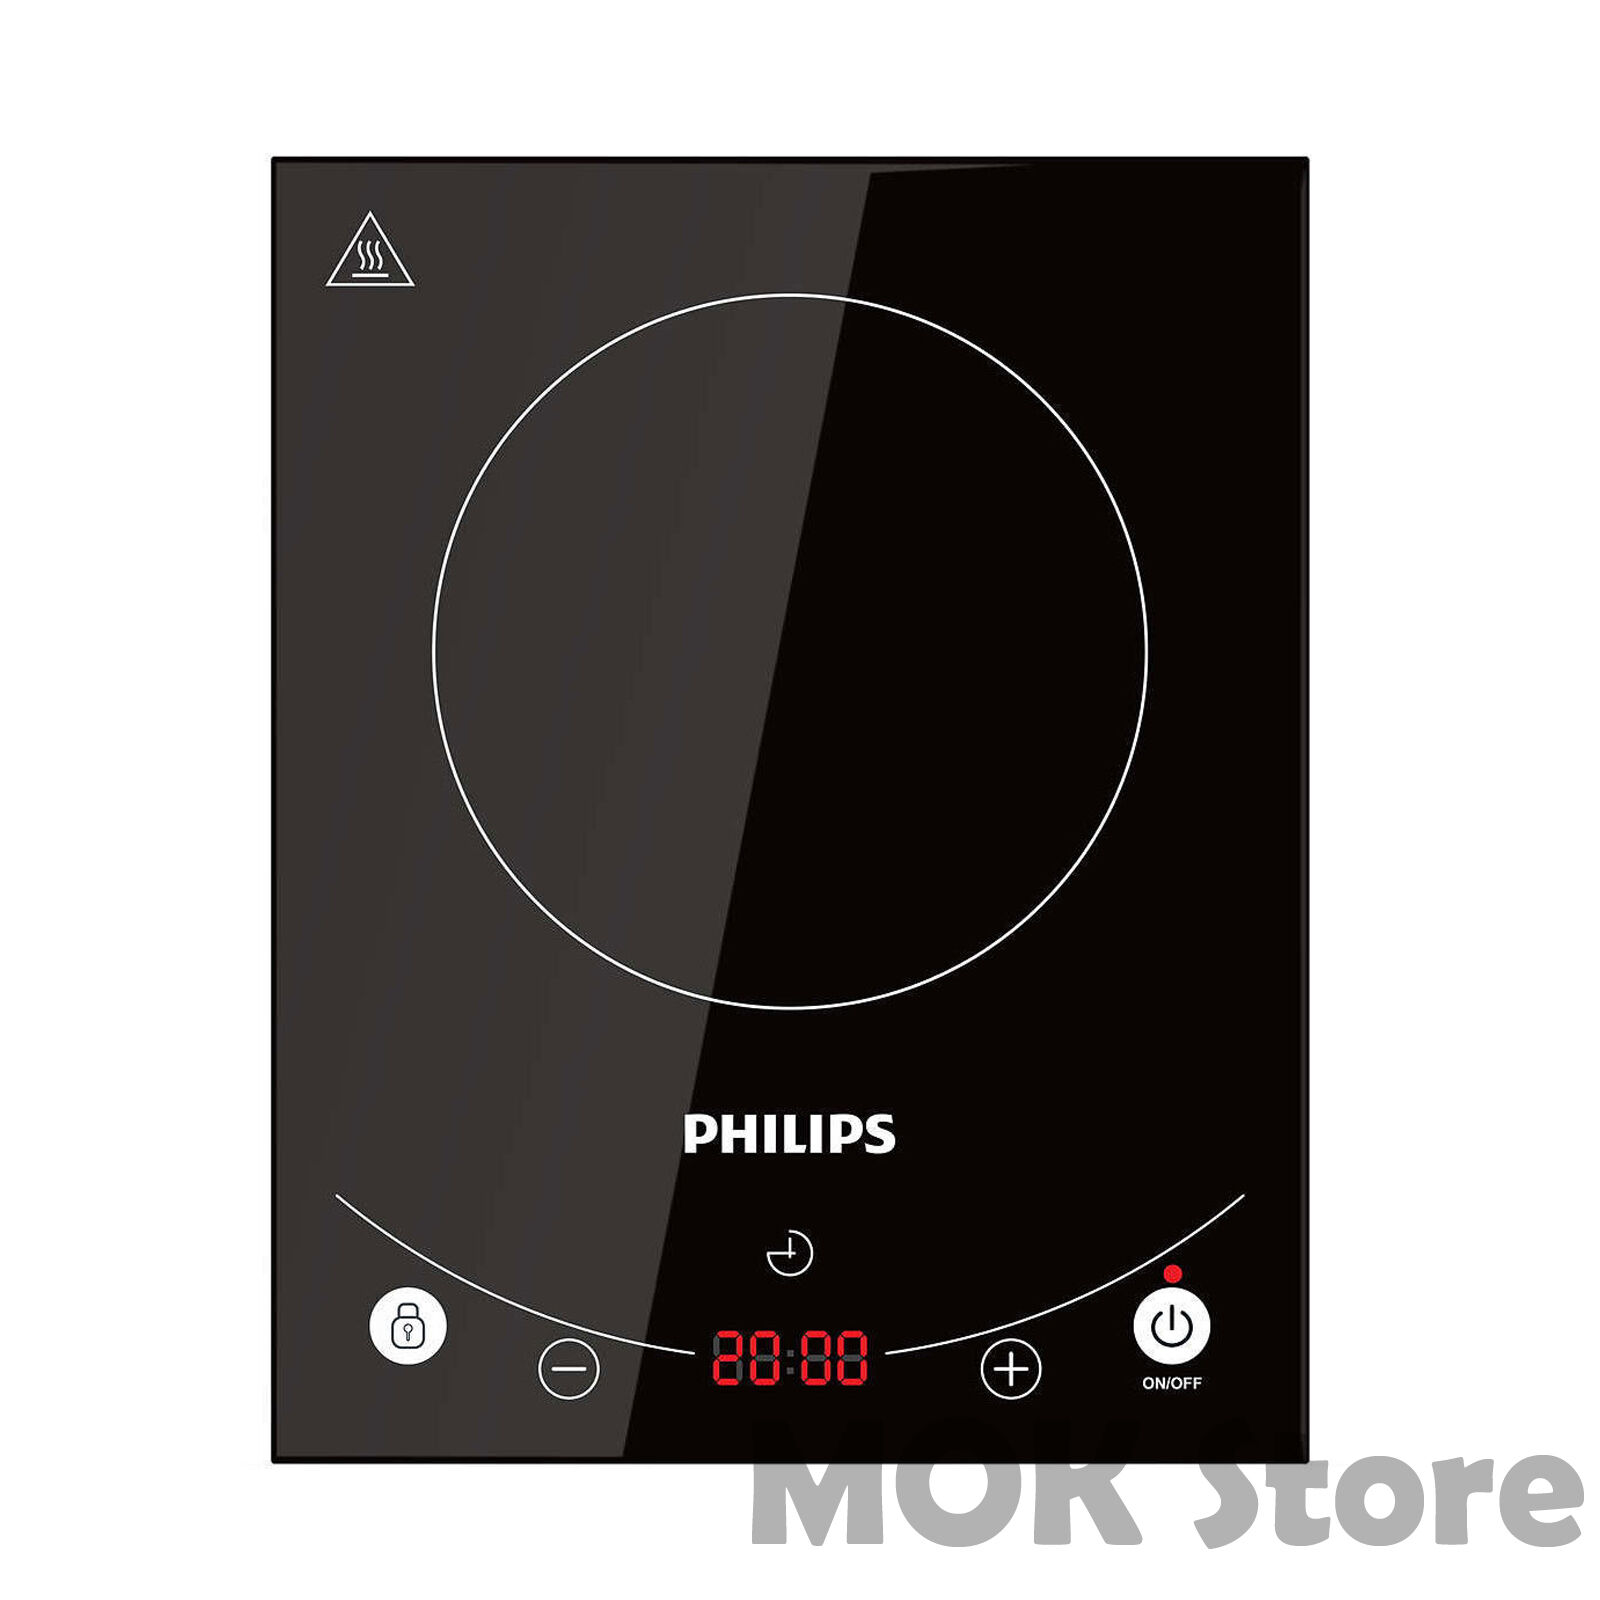 Kuche Single Stove Induction Cooktop Philips Electric Range Induction Cooker Cooktop Single